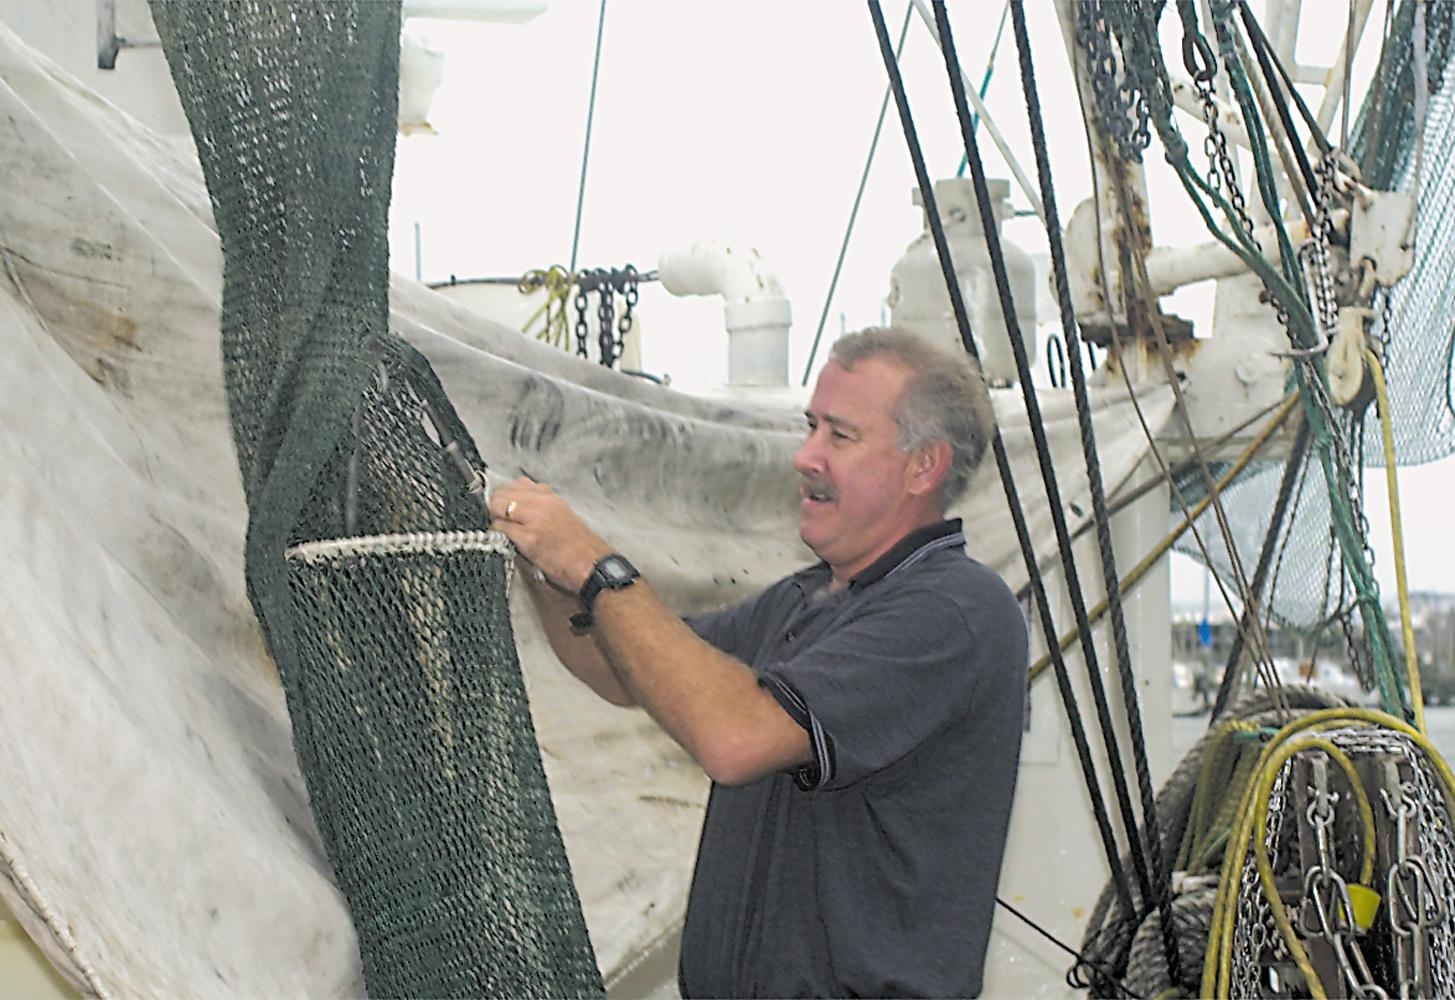 Marine resources specialist Dave Burrage  installs a bycatch reductions device into a shrimp net.